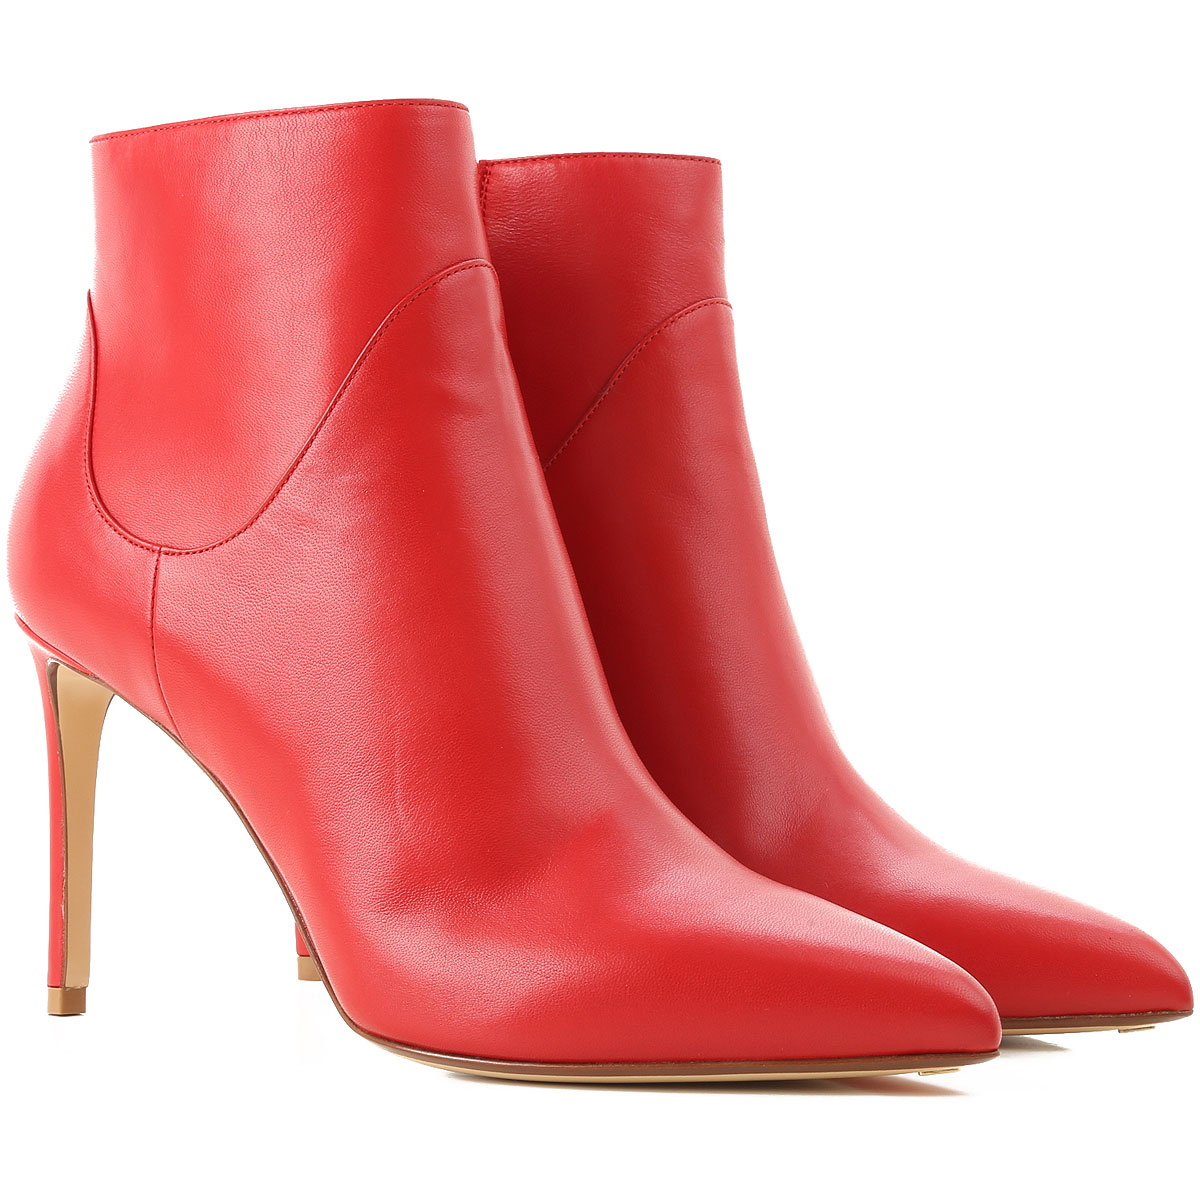 Image of Francesco Russo Boots for Women, Booties, Red, Leather, 2017, 10 6 7 8 8.5 9